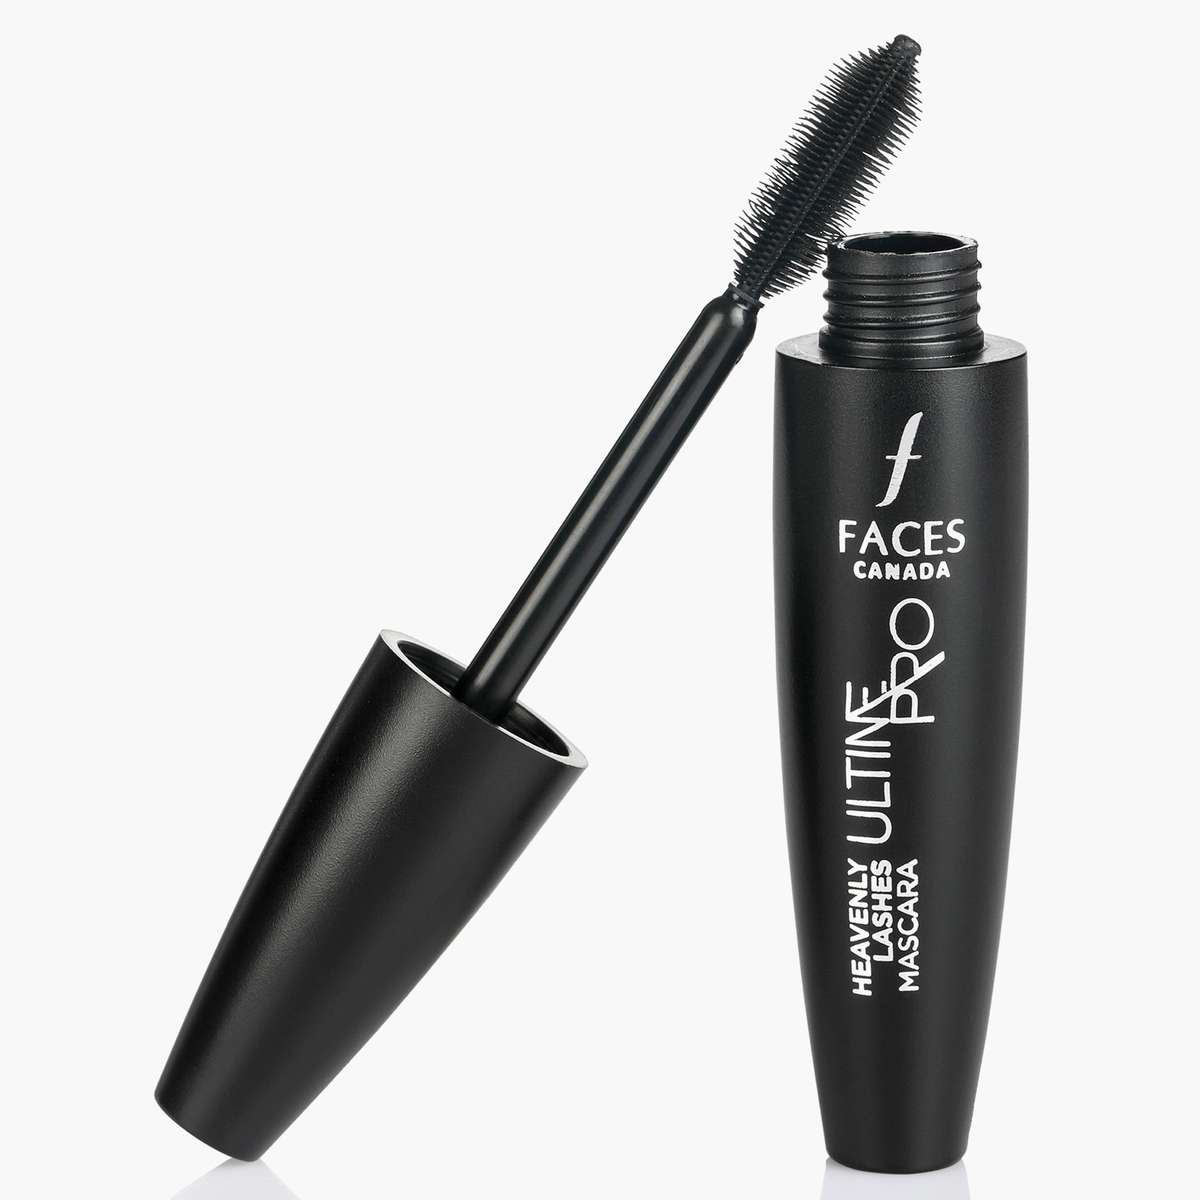 FACES CANADA Ultime Pro Heavenly Lashes Mascara